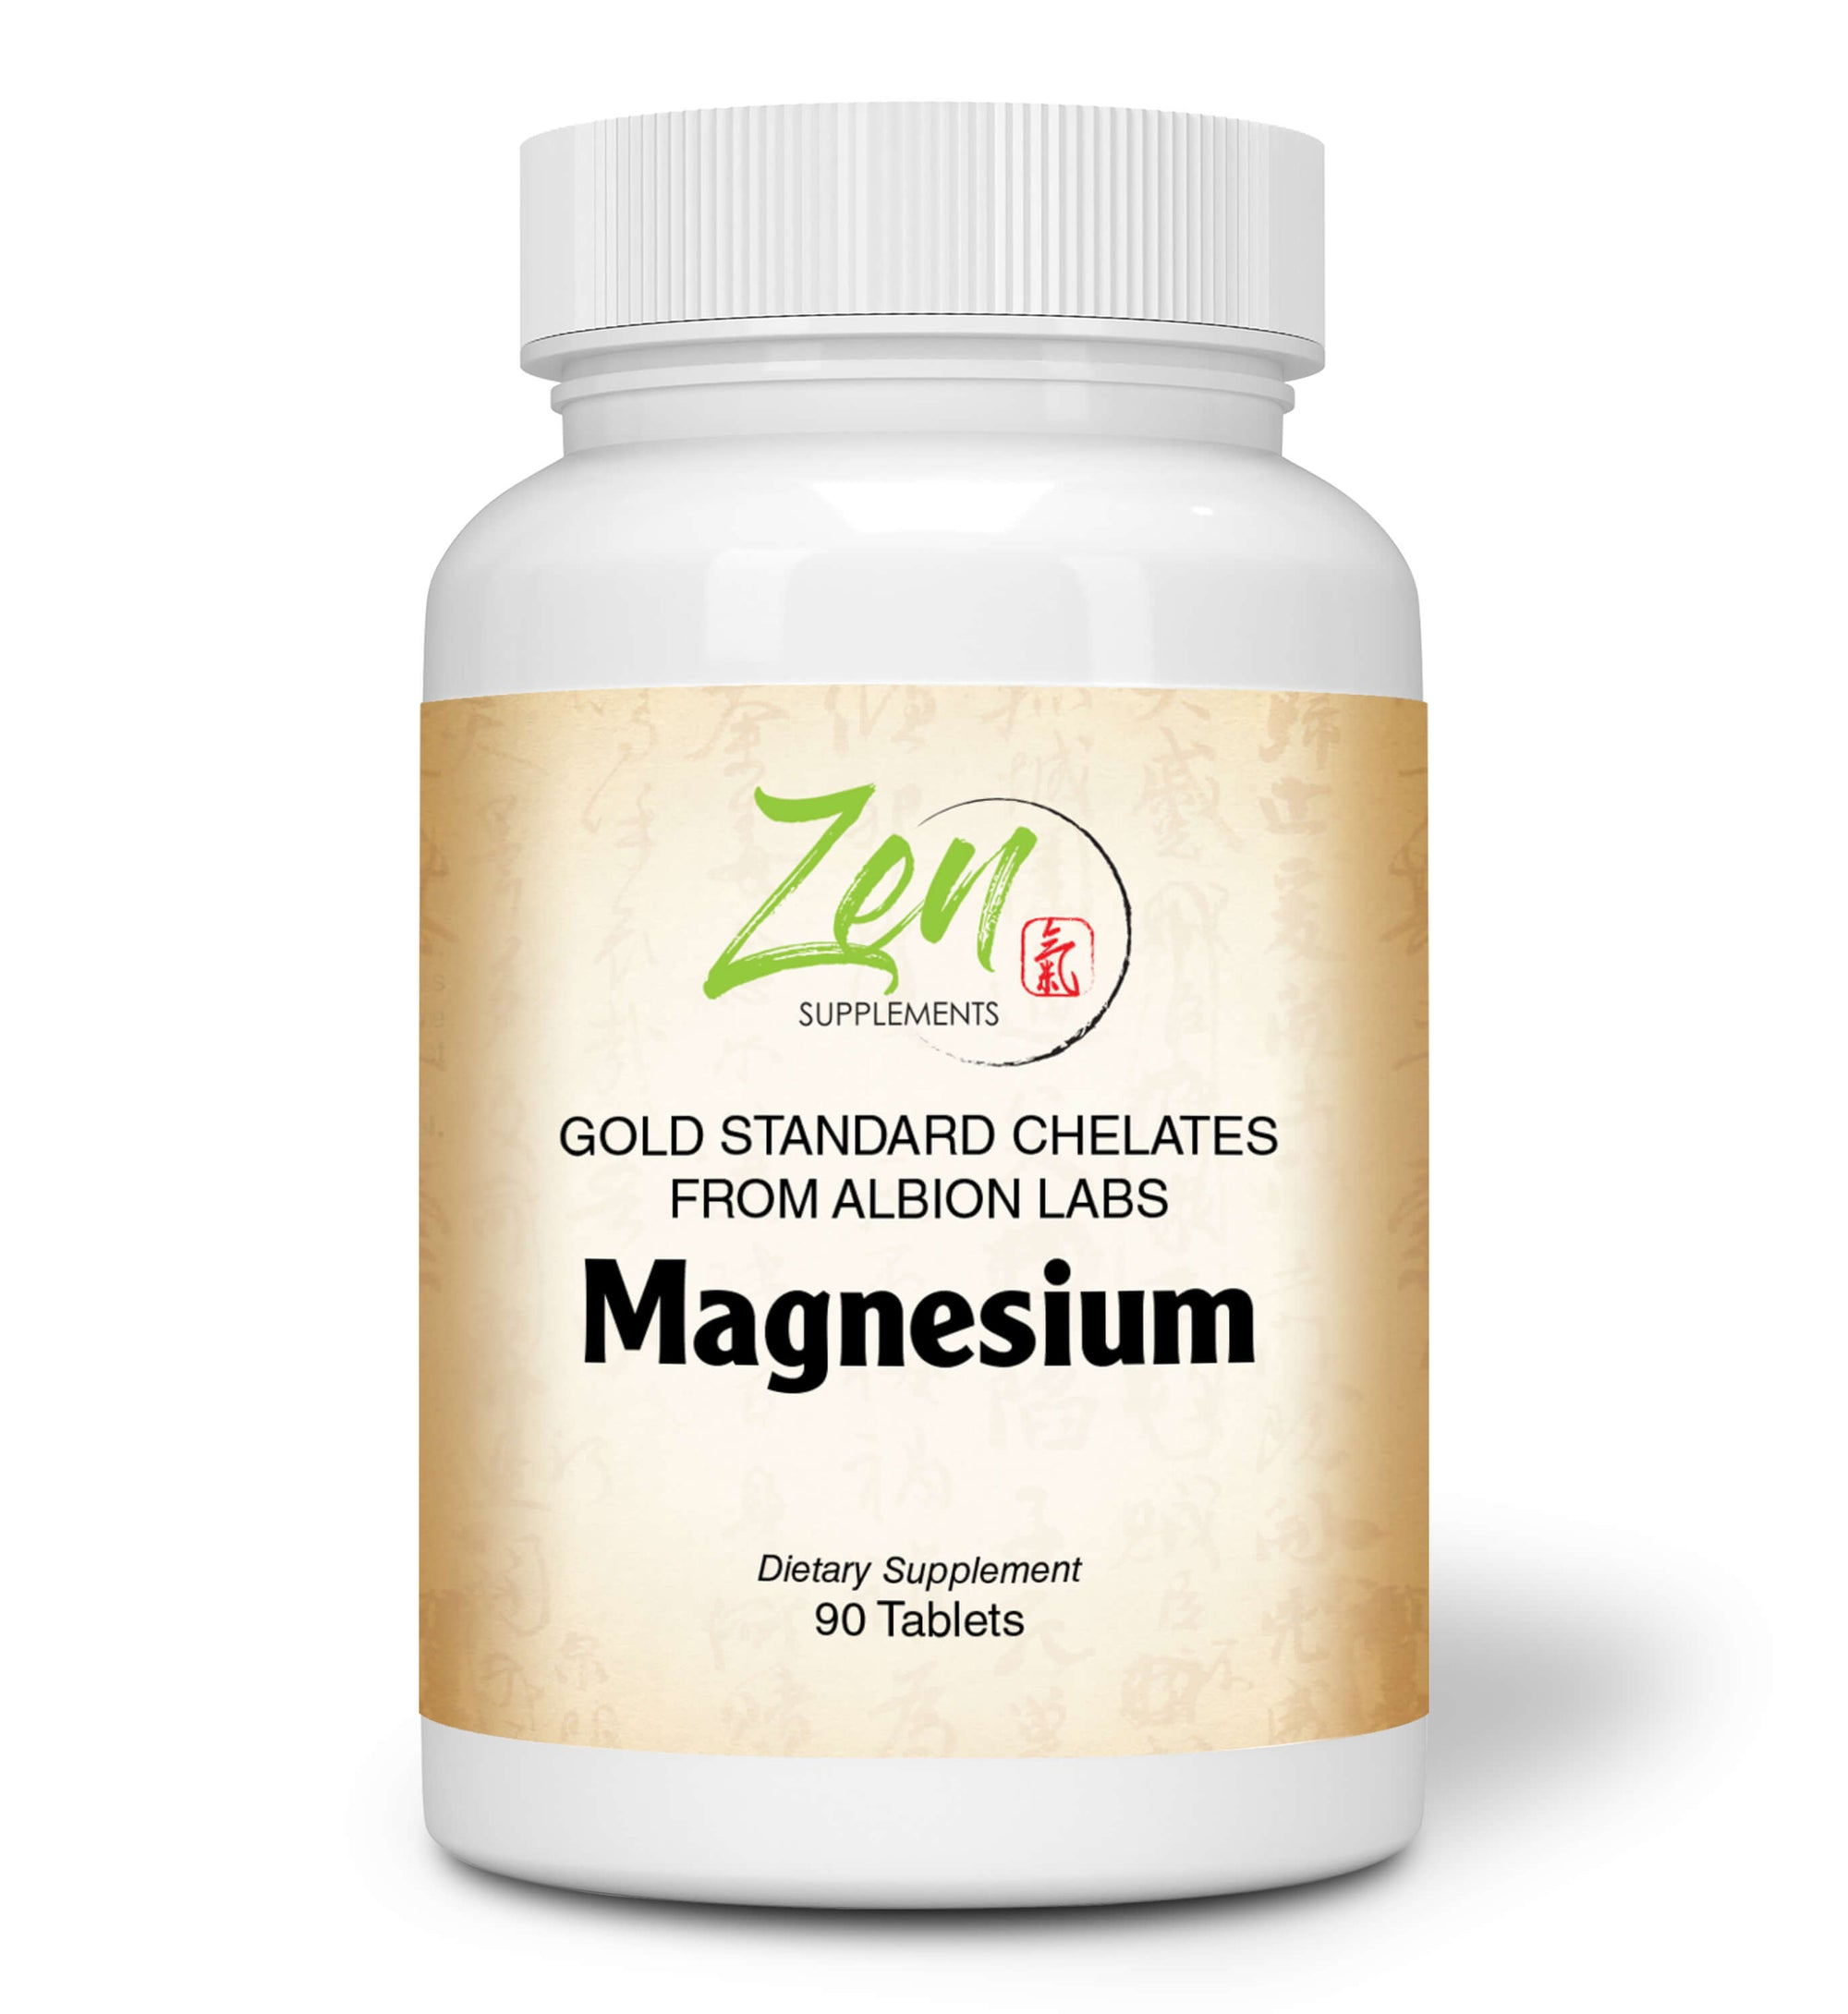 Should I take a magnesium supplement?